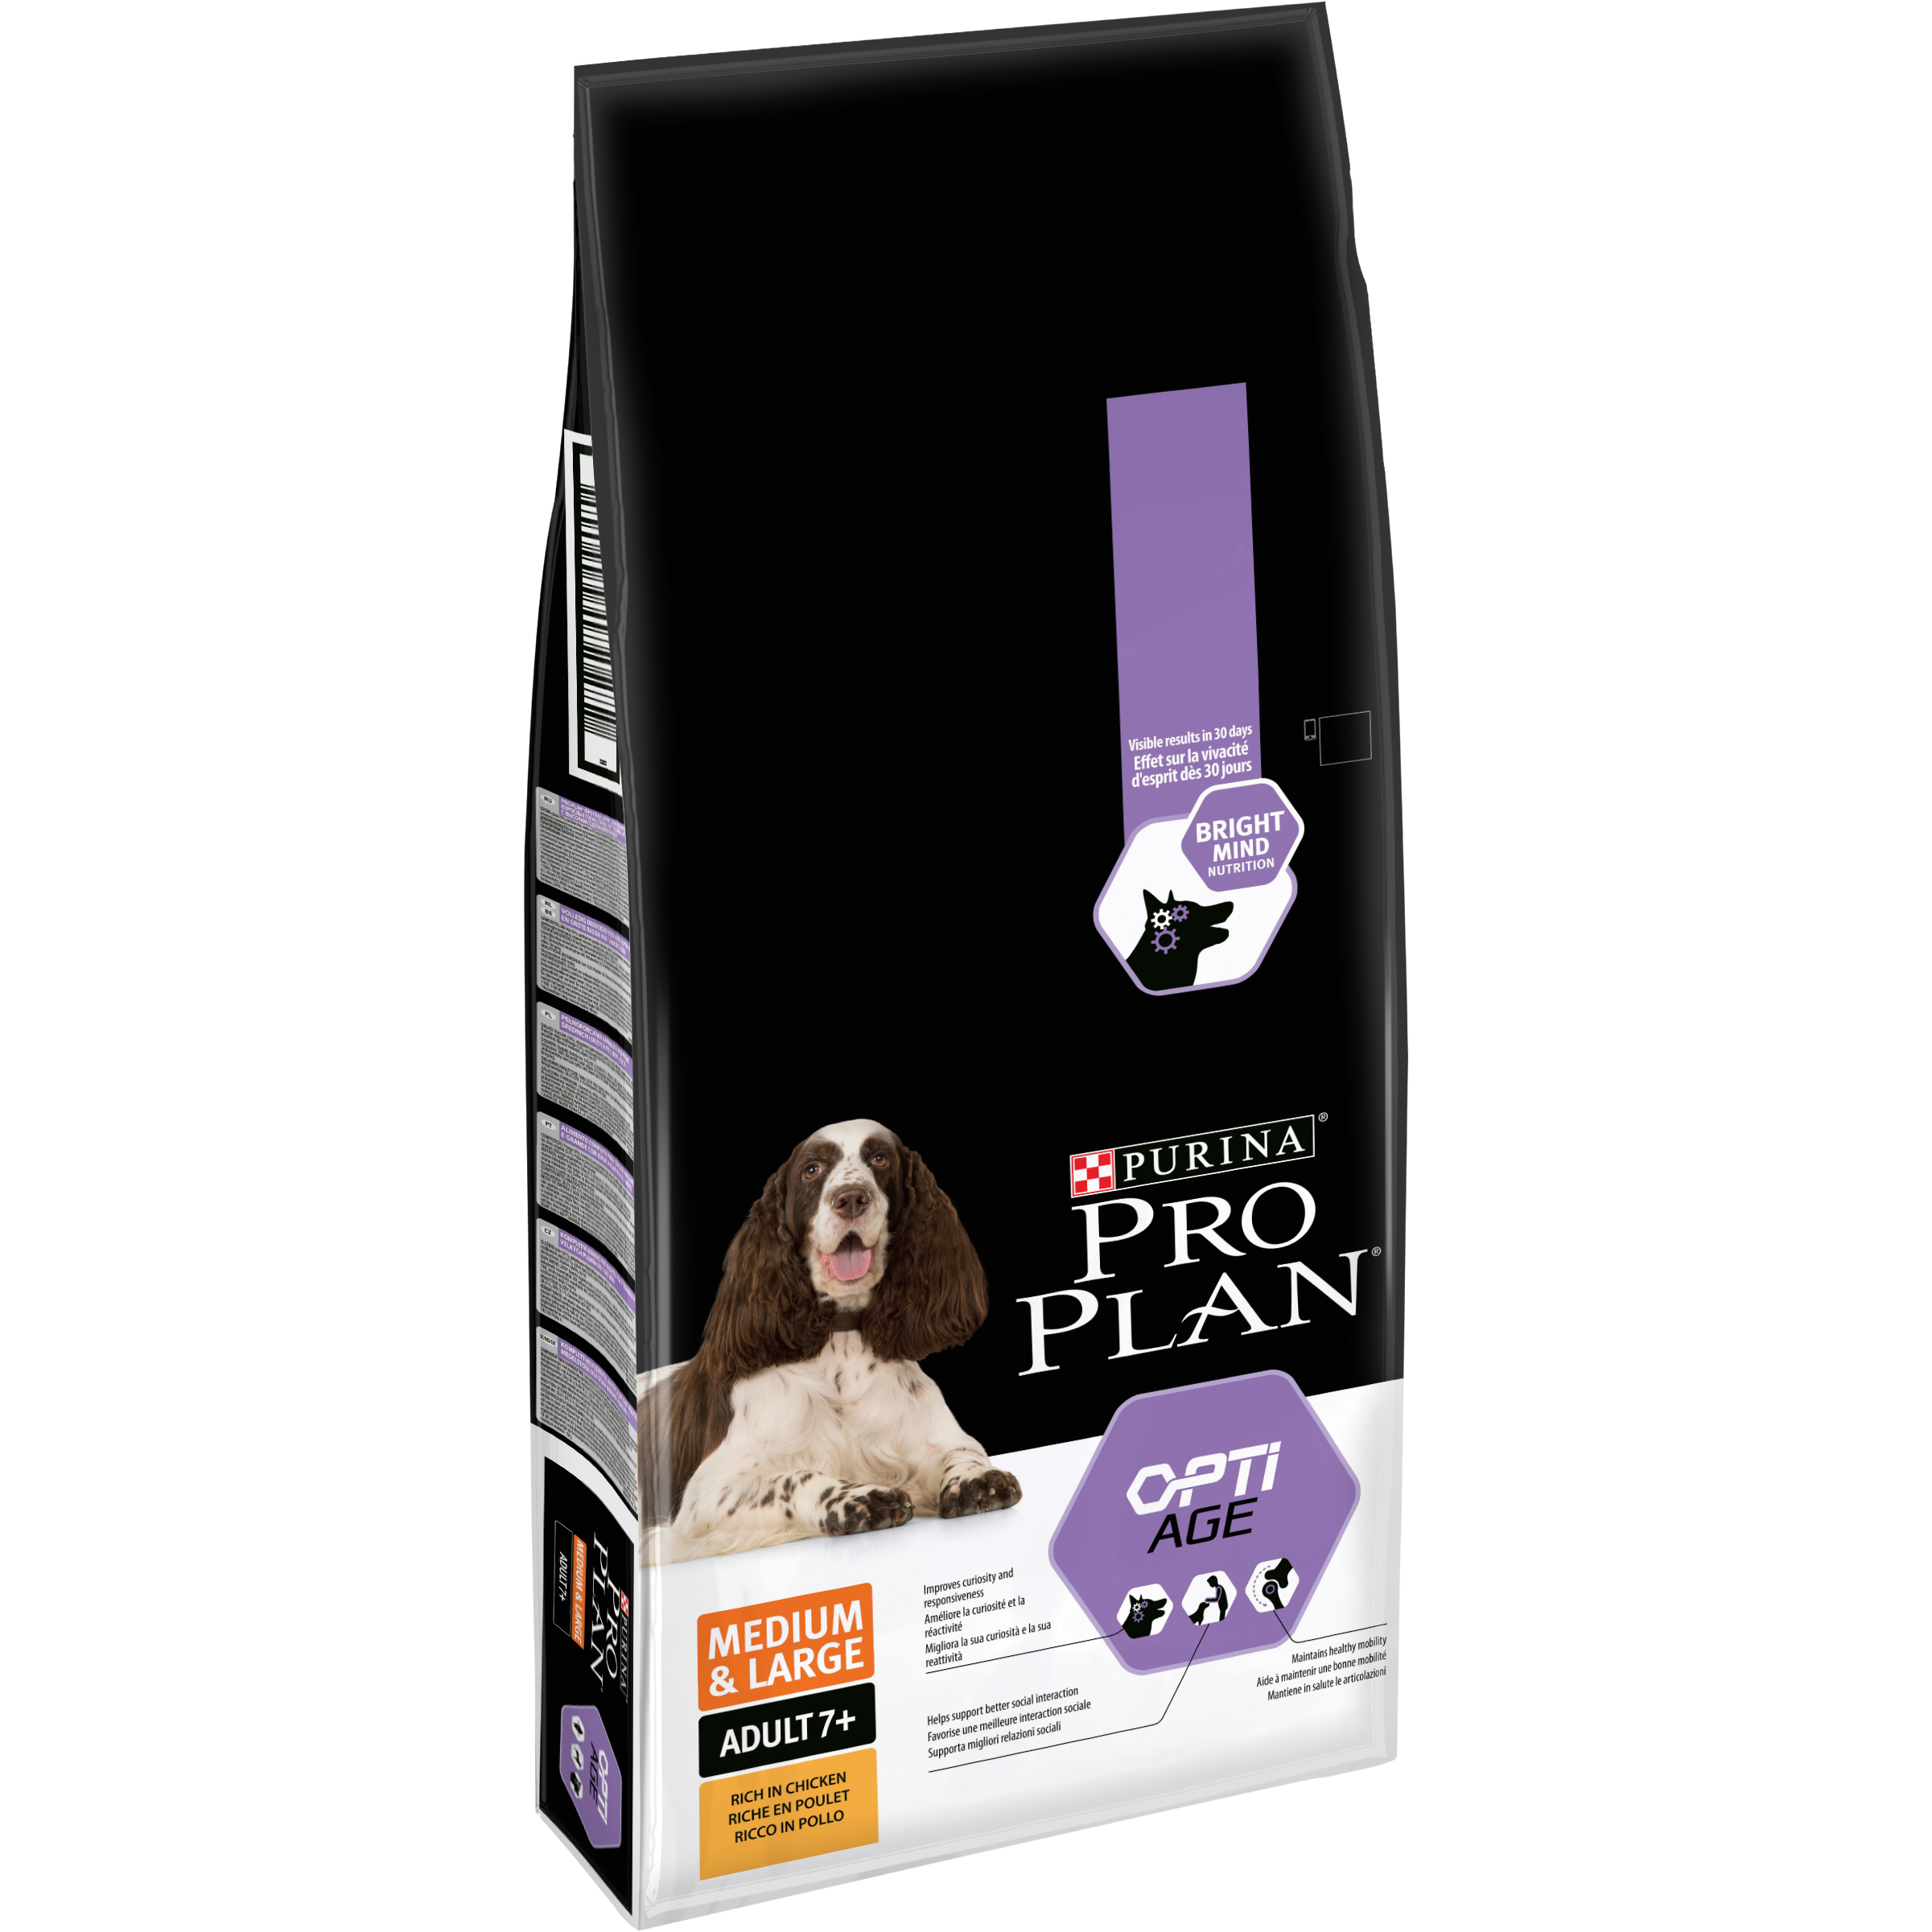 Purina Pro Plan Adult 7+ 14kg